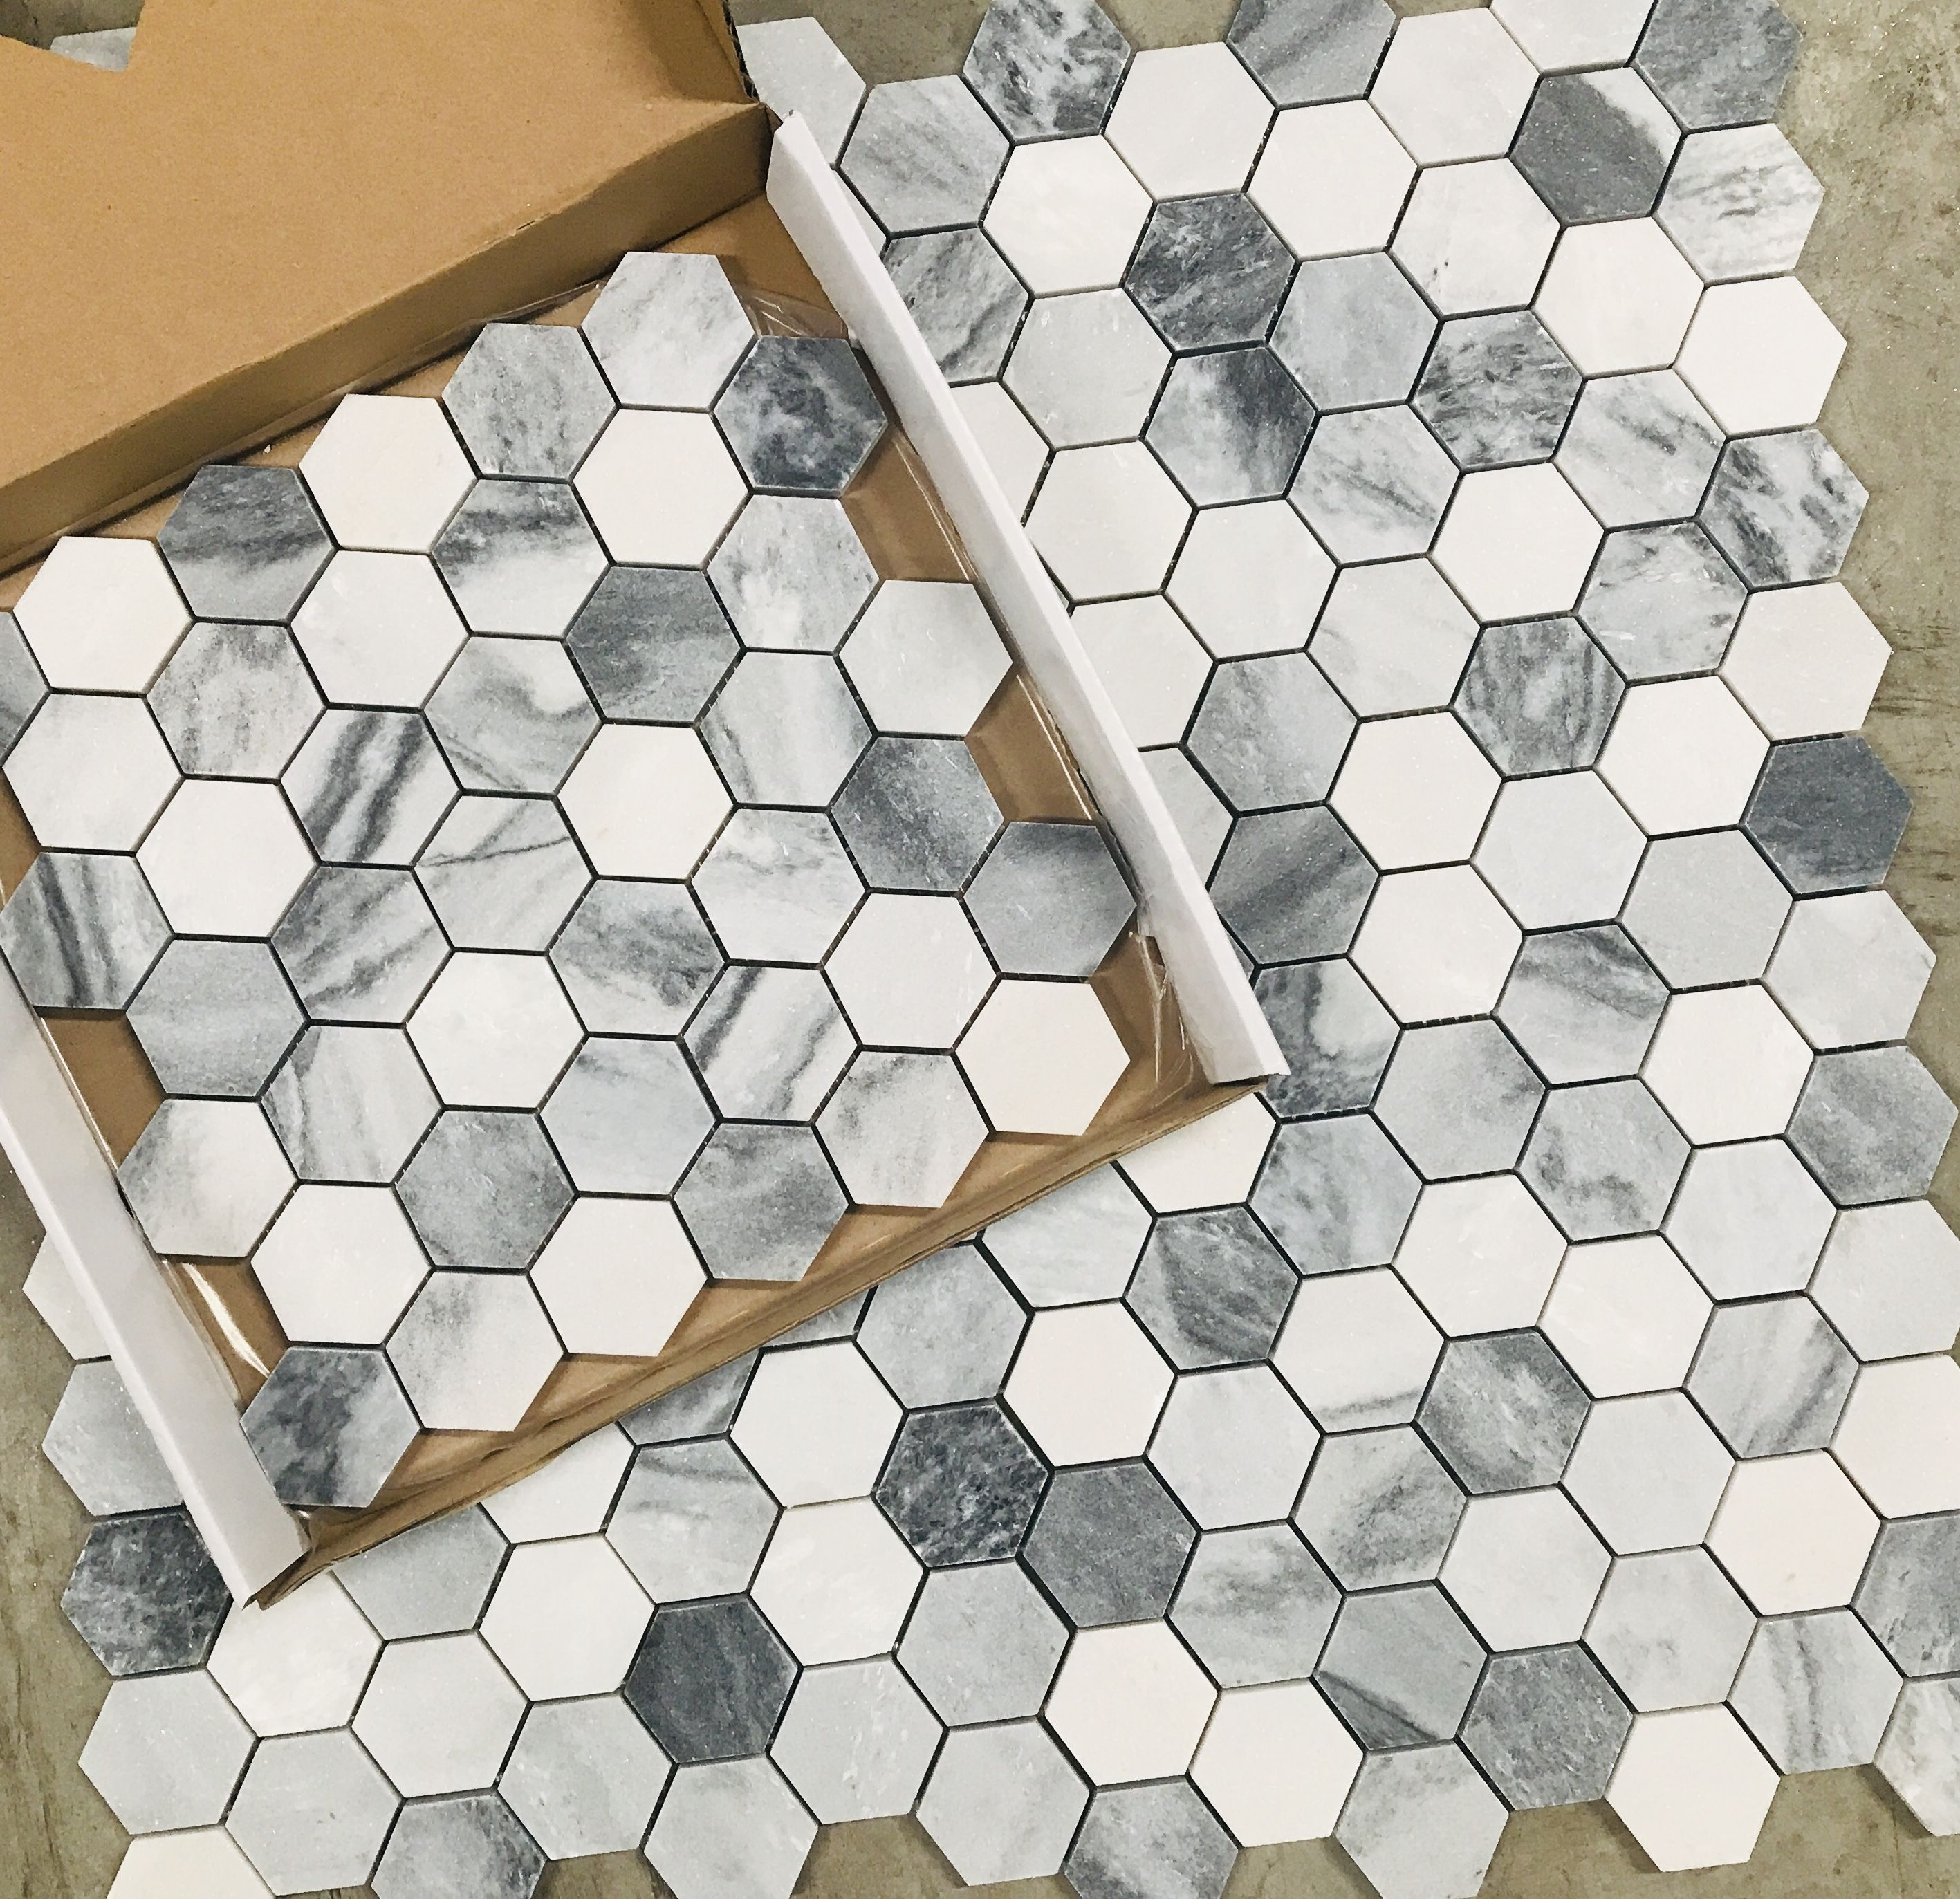 9 95 A Square Foot And Free Shipping Shades Of Gray Hexagon Marble In 2020 Hexagon Tile Floor Mosaic Flooring Wall Tiles Price